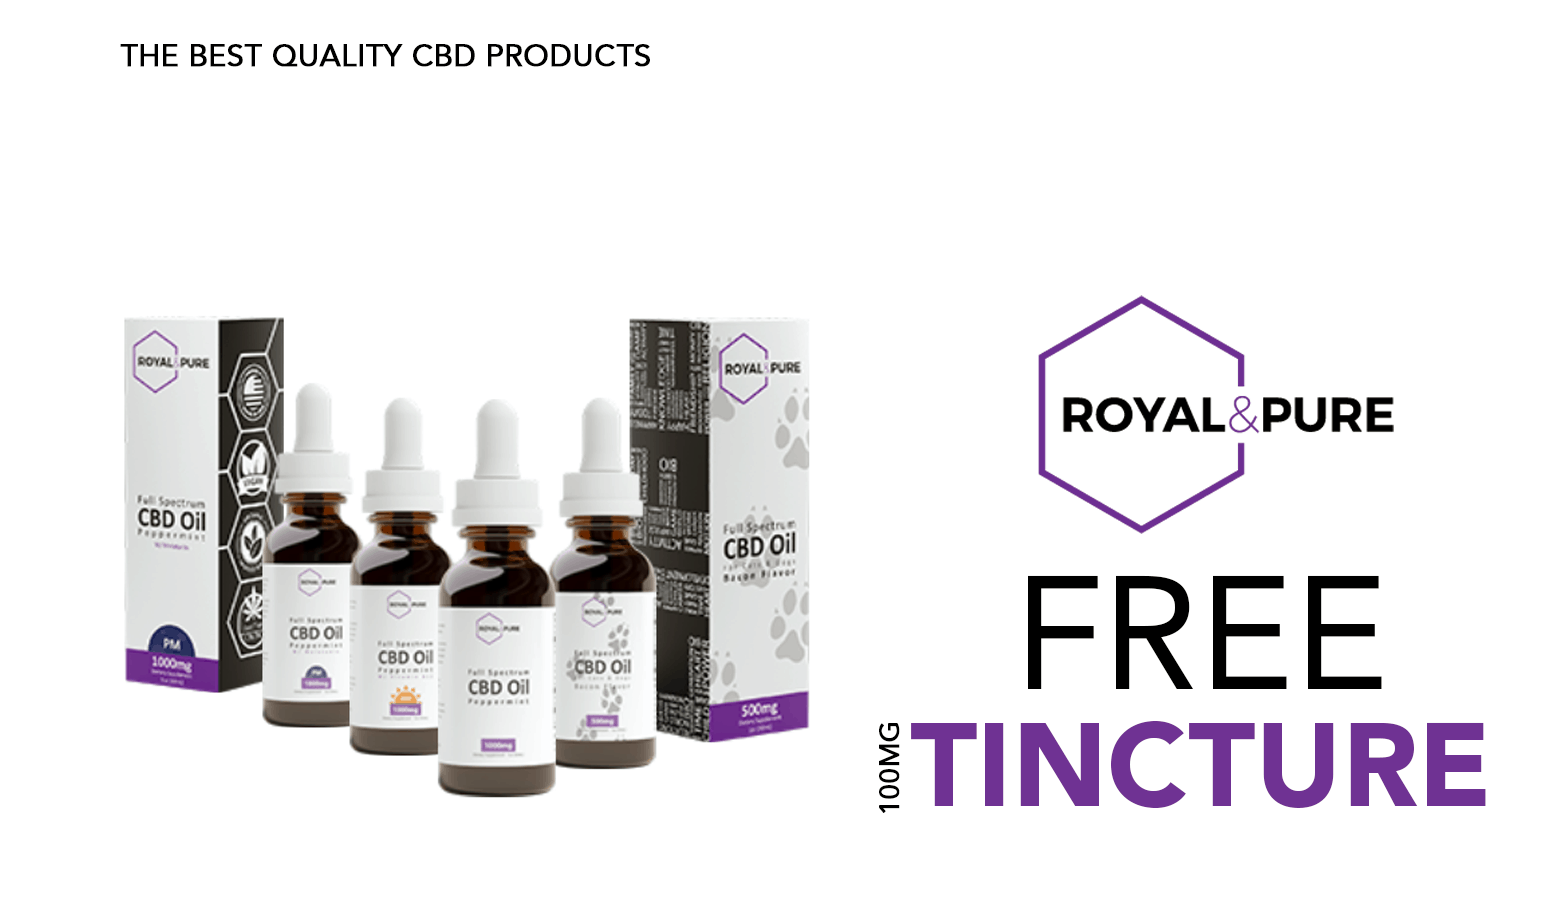 Royal & Pure CBD Coupons Free Tinctures